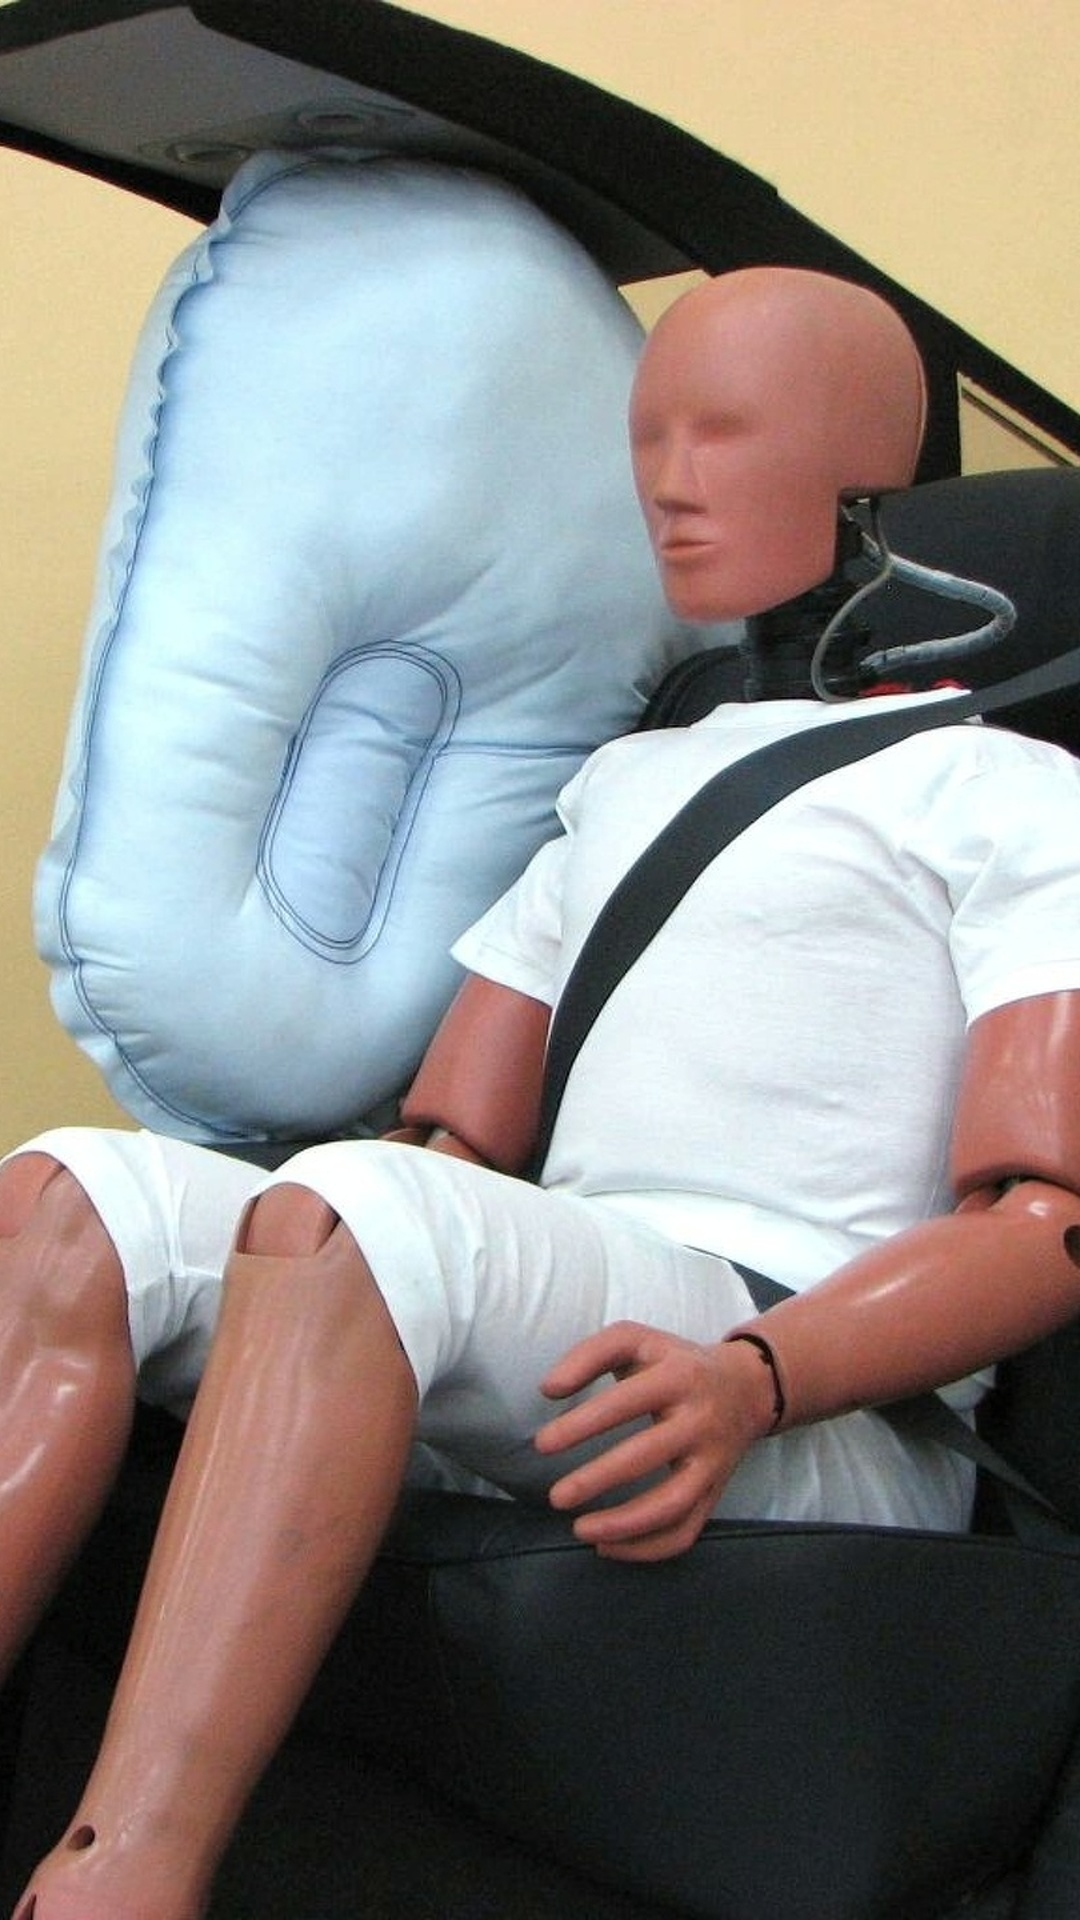 Toyota Develops World's First Rear-seat Center Airbag